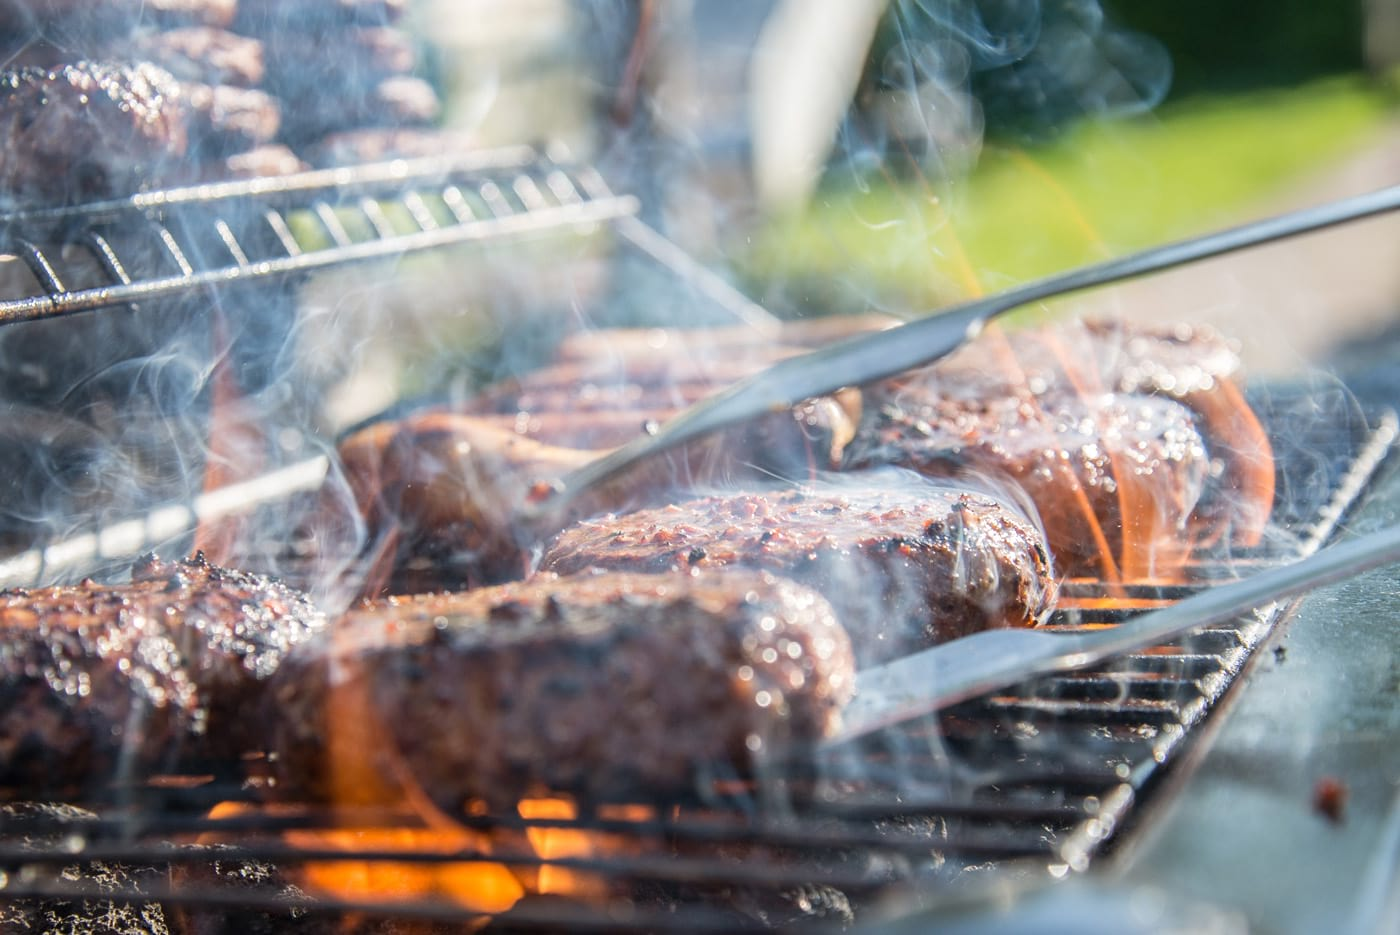 With Fire How to Plan a Corporate Summer BBQ with a Difference - Gourmet BBQ Caterers in Kent, UK